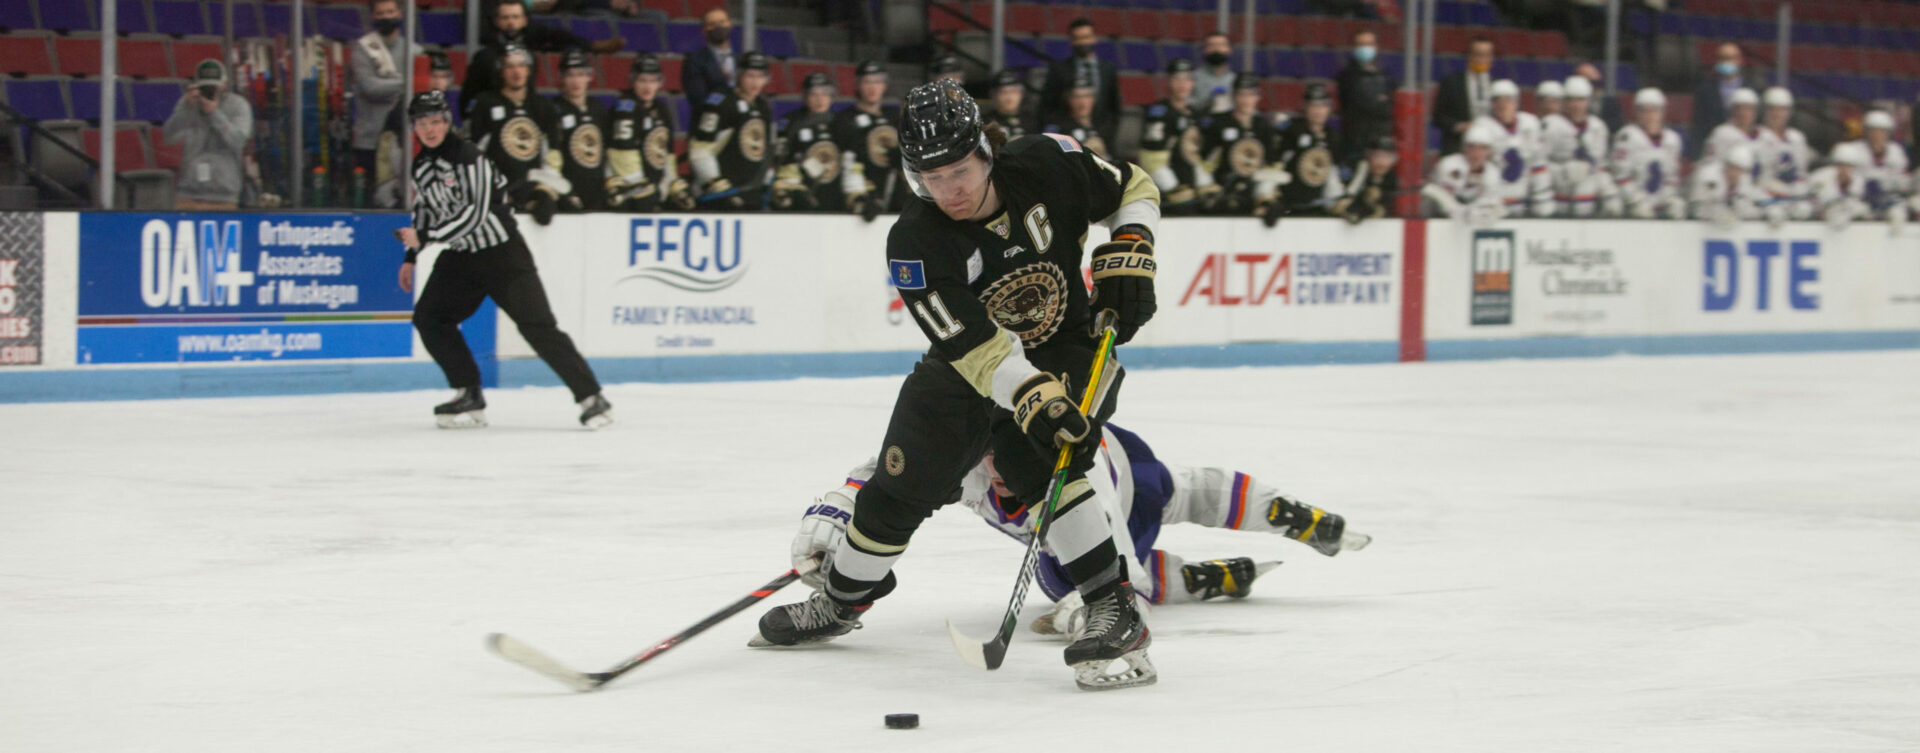 Lumberjacks ready to brush off late slump, clash with Green Bay this weekend at home in the first round of playoffs